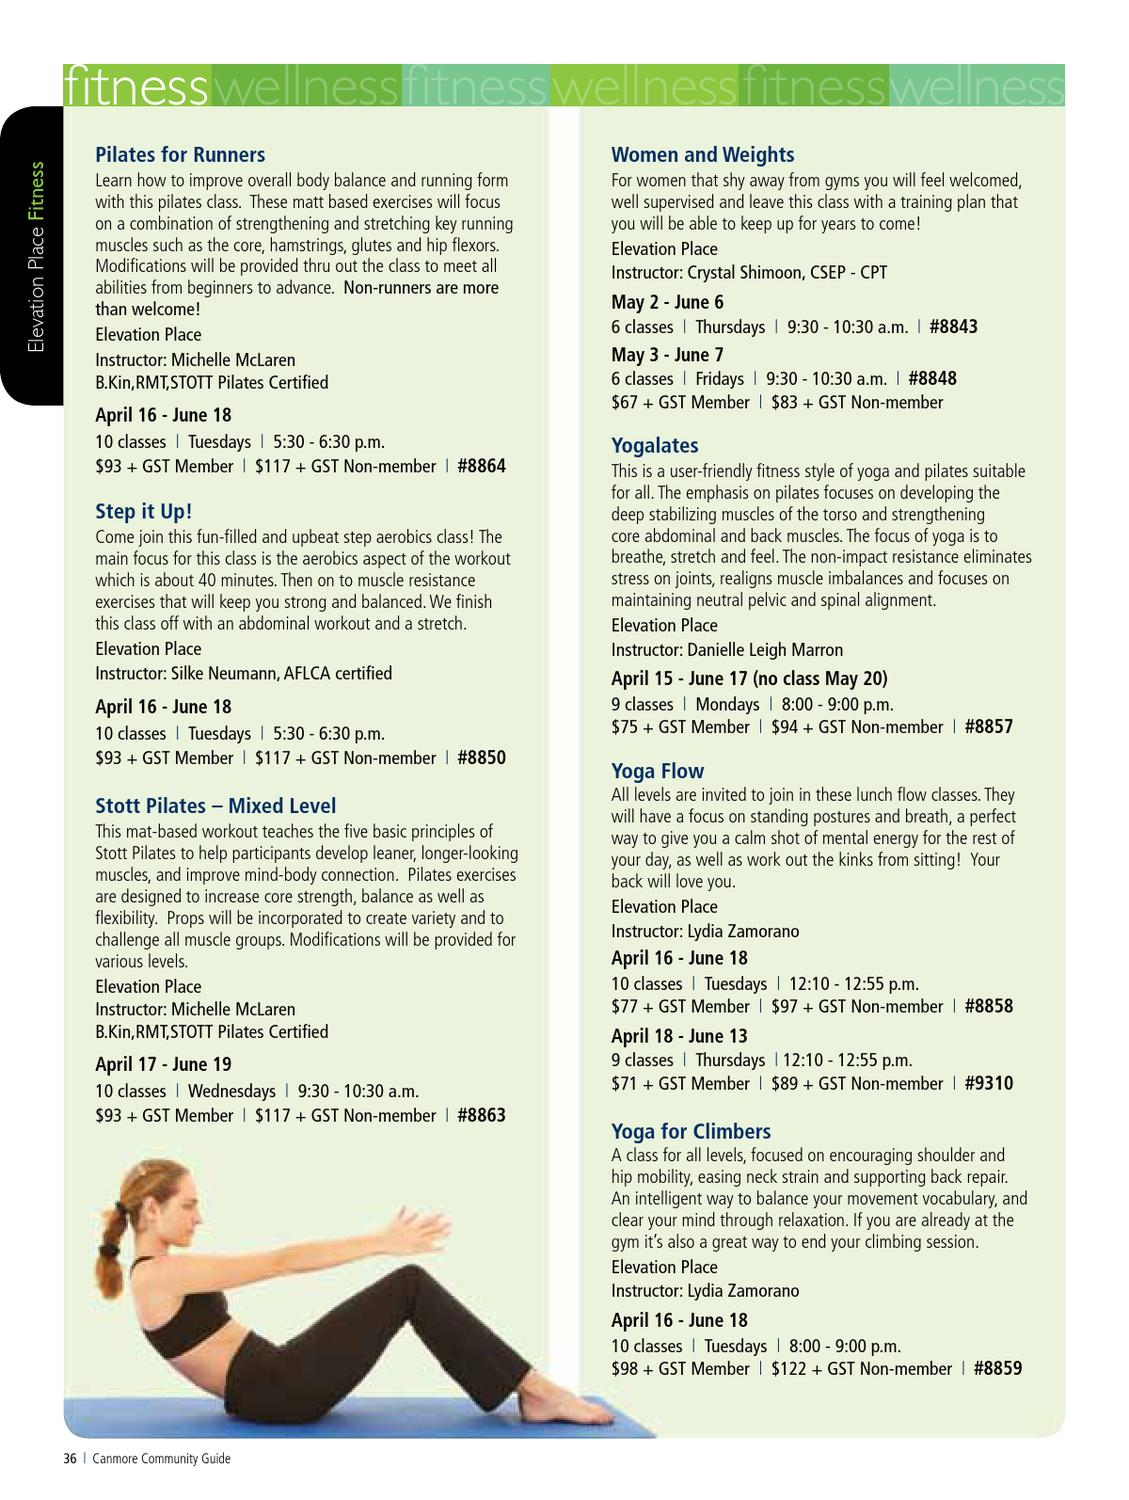 Town Of Canmore Community Guide Spring Summer 2013 By Town Of